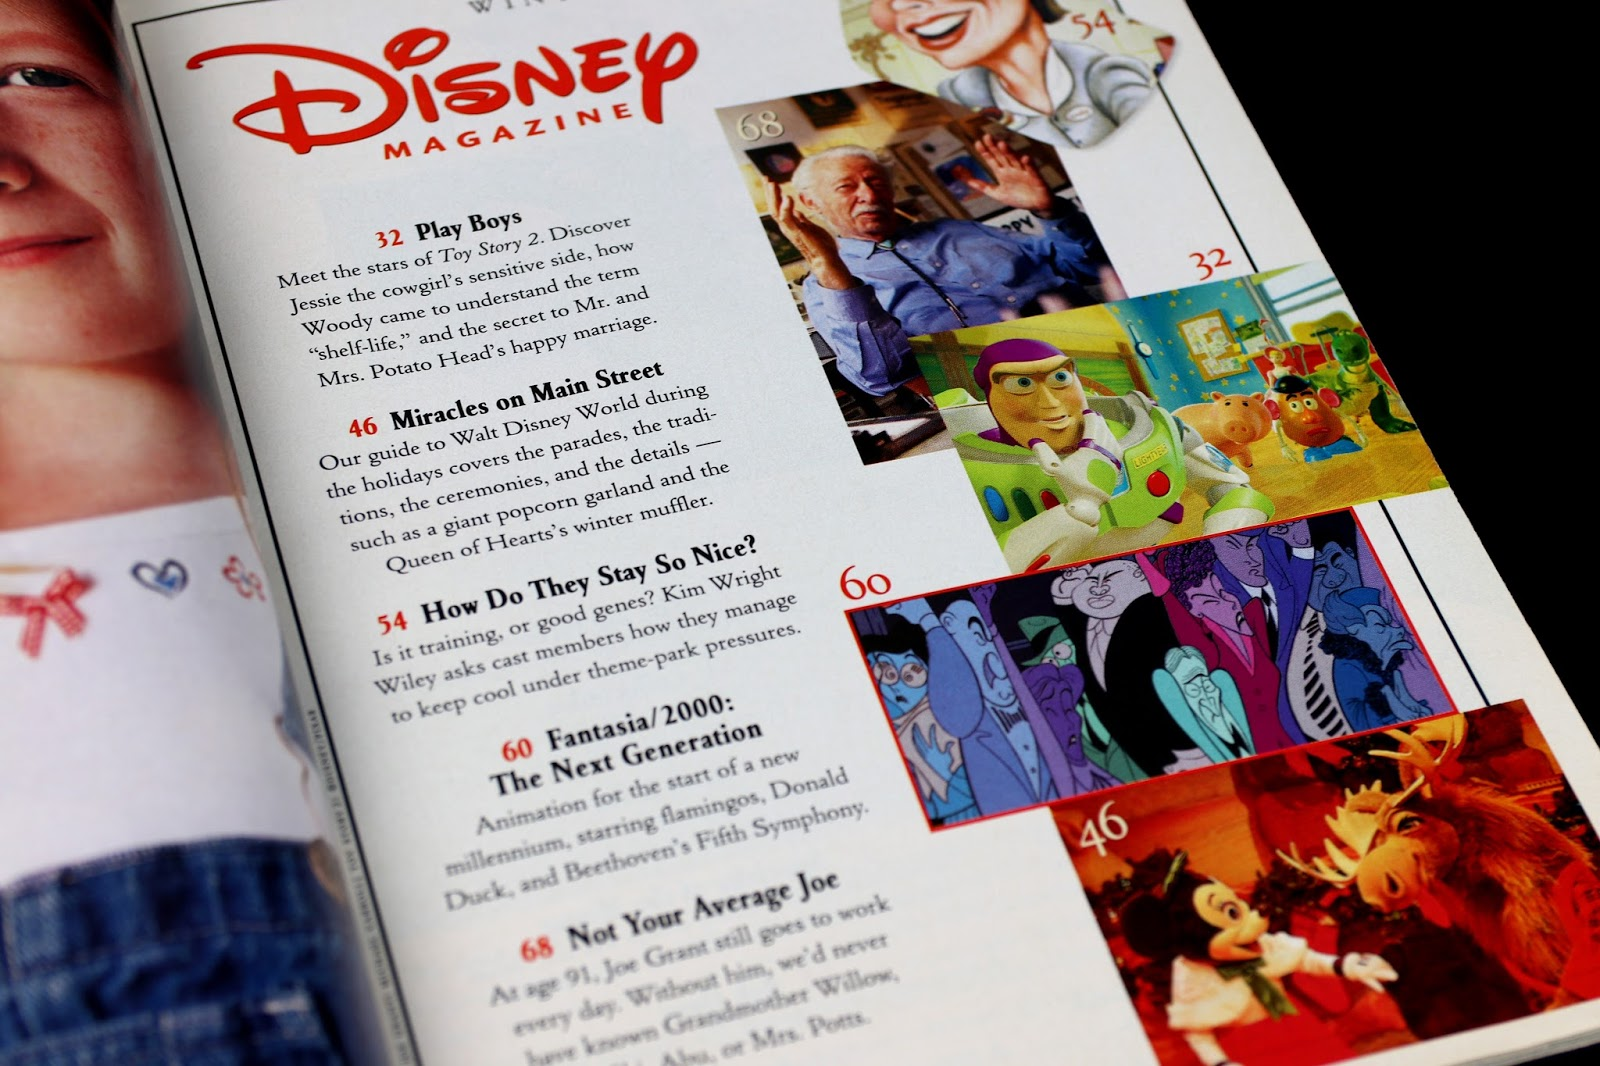 Disney Magazine (Winter 1999-2000 Edition) Toy Story 2